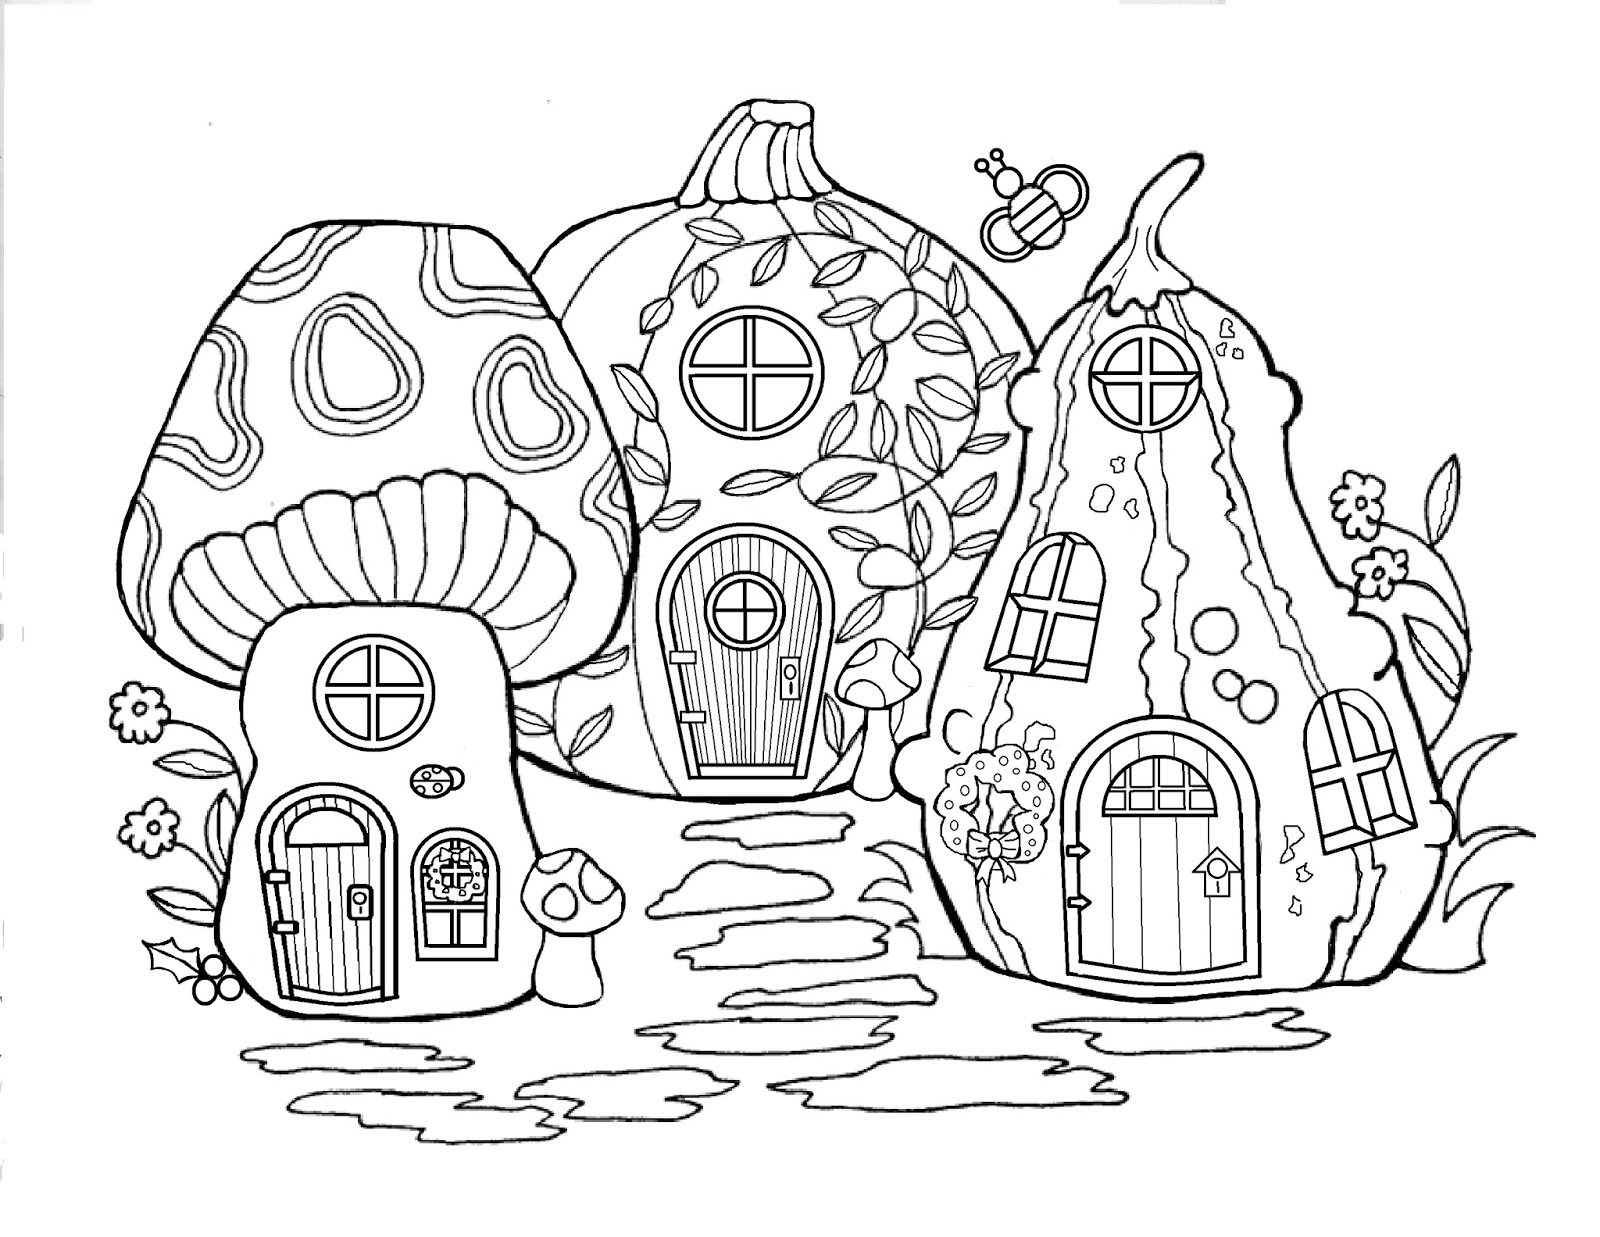 Christmas Gnome Coloring Page With Let It Shine Fairy Merry Day13